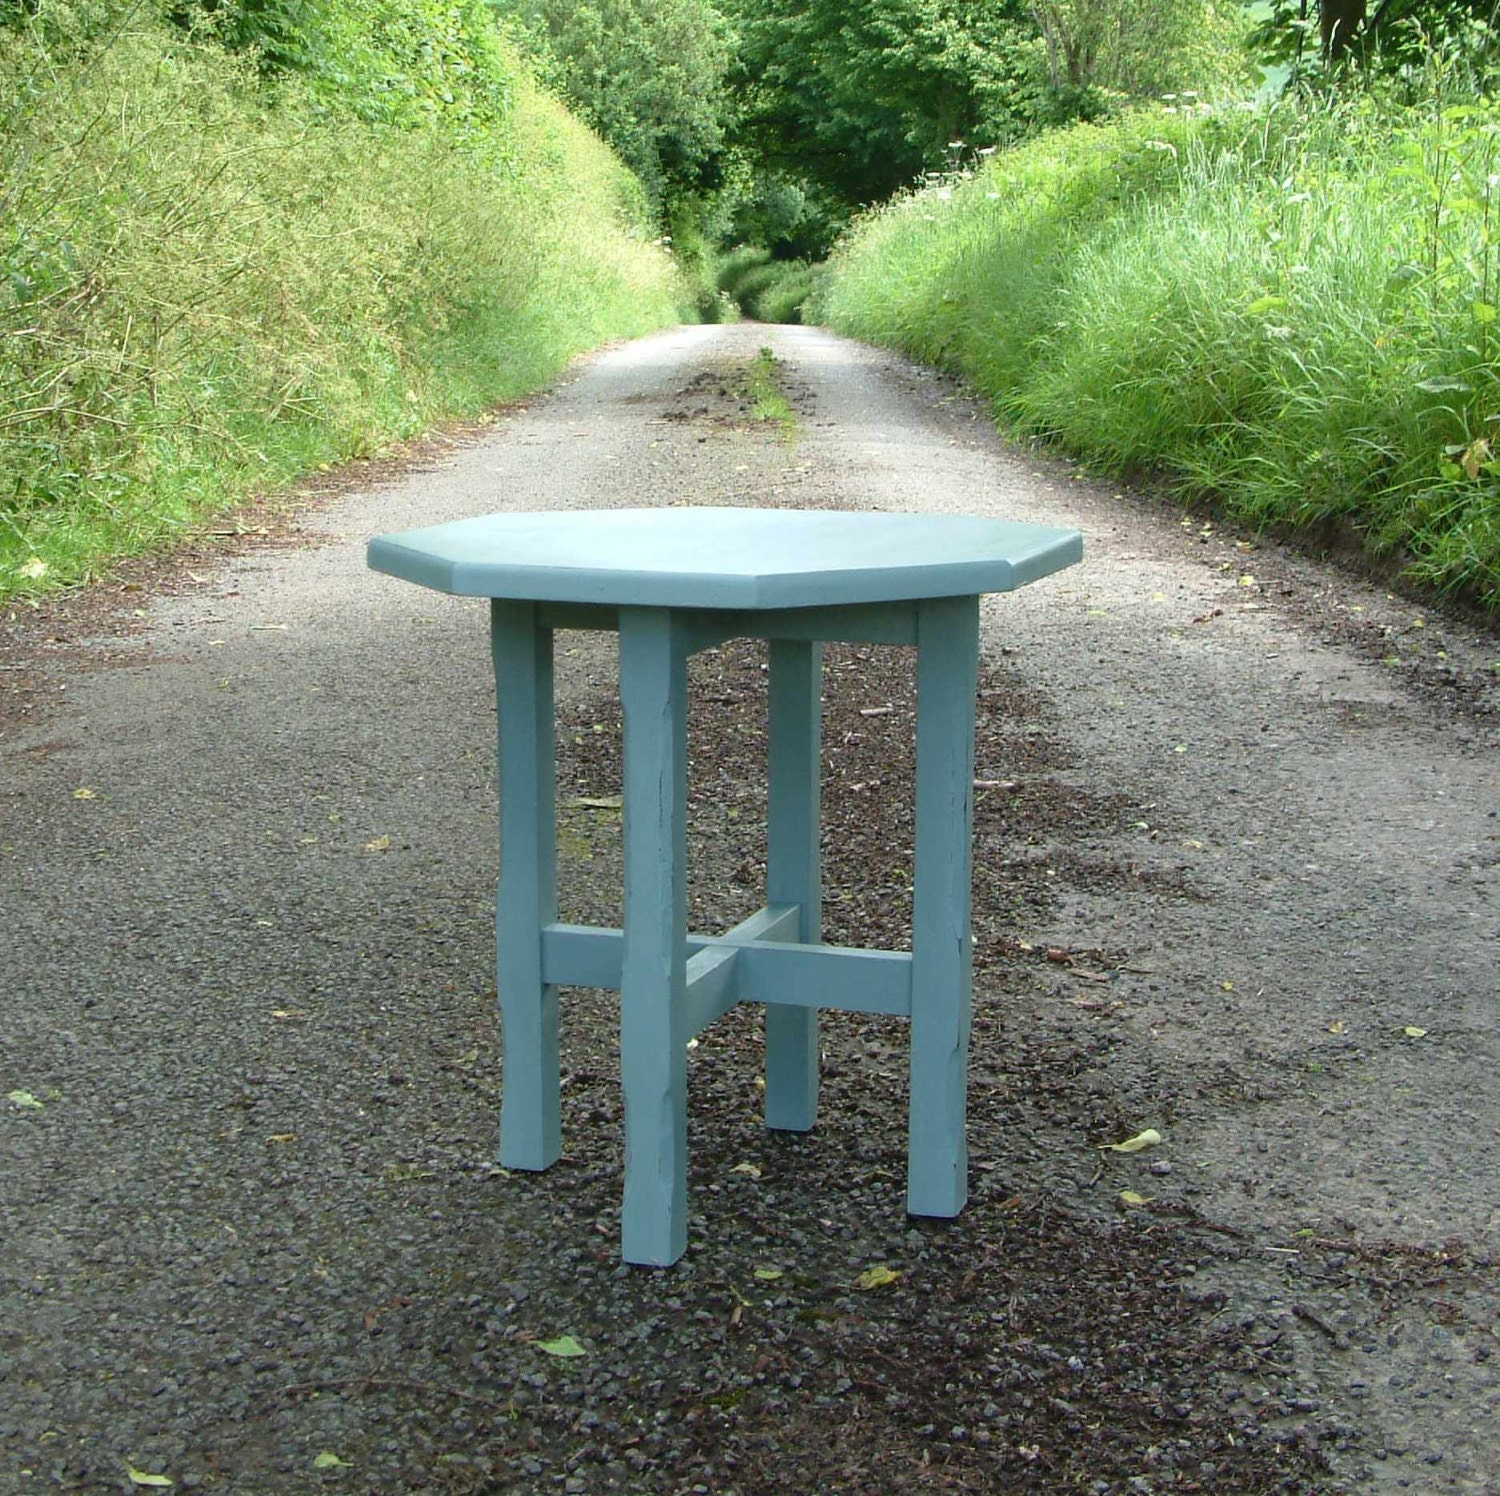 https://www.etsy.com/au/listing/191971328/hand-painted-side-table-with-octagonal